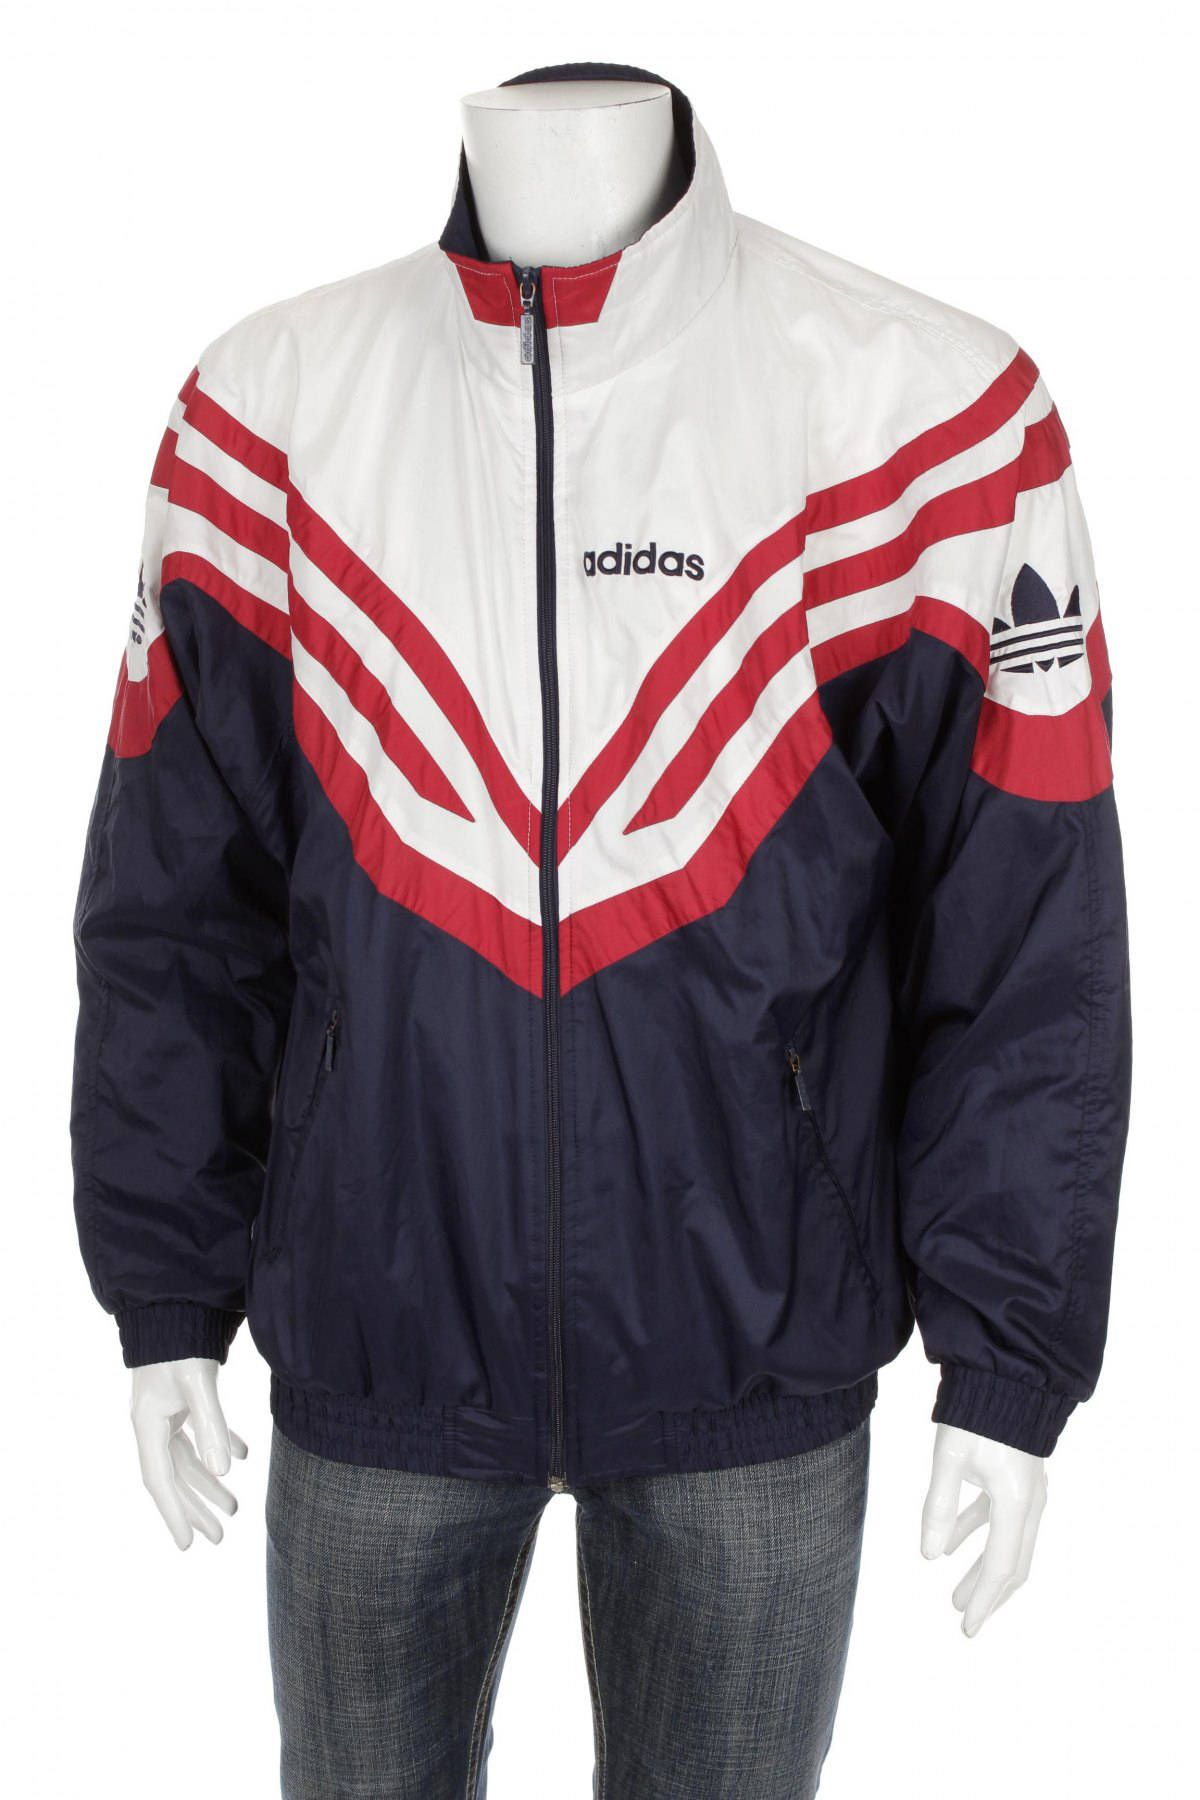 Vintage 90s Adidas Trefoil Windbreaker Tracksuit top jacket Blue Red White  Size L D7 by VapeoVintage on Etsy 4d6da3c7de